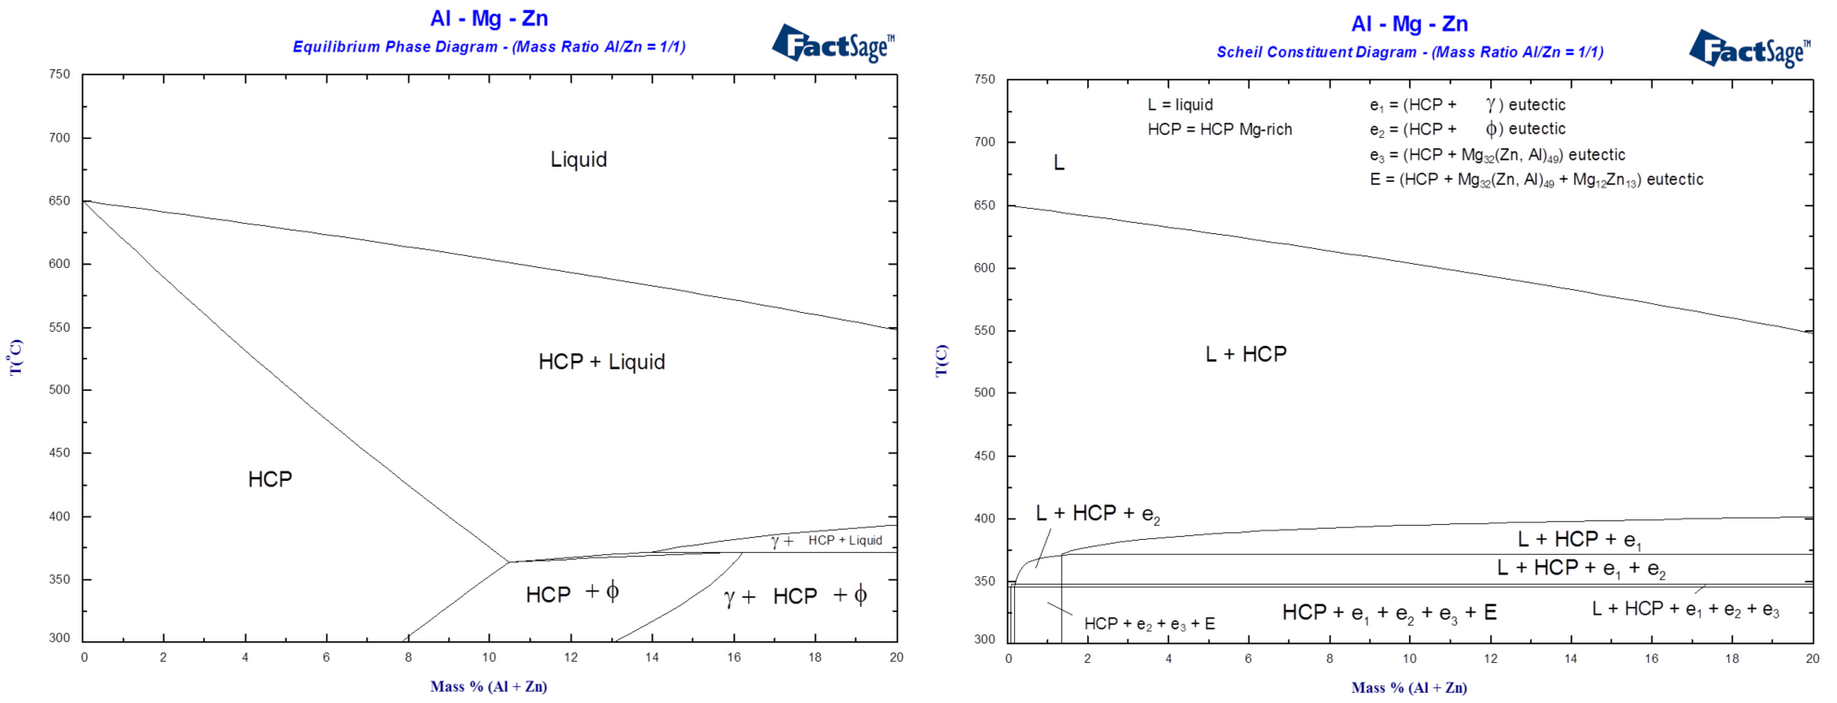 diagrams of the al-mg-zn ternary system for mg-rich alloys at constant mass  ratio al/zn = 1/1 1 - calculated phase diagram and equilibrium  solidification